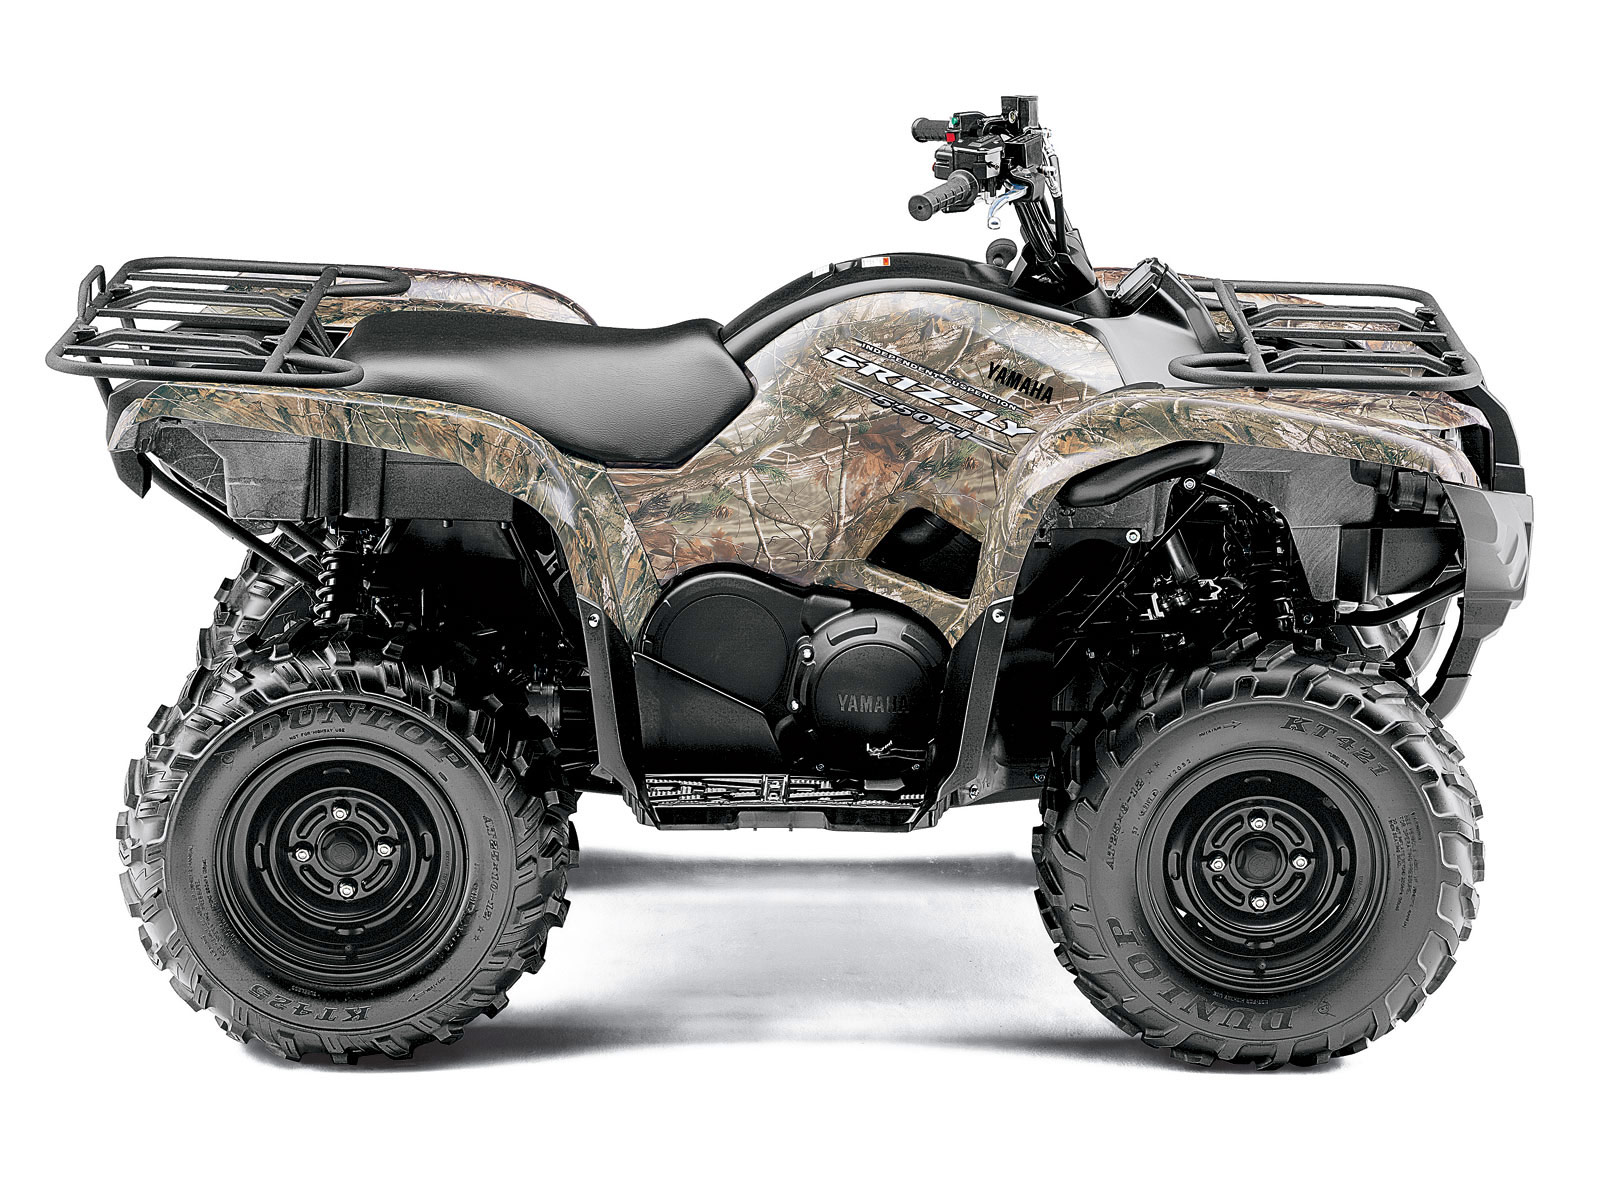 2011 yamaha grizzly 550 fi 4x4 atv pictures. Black Bedroom Furniture Sets. Home Design Ideas